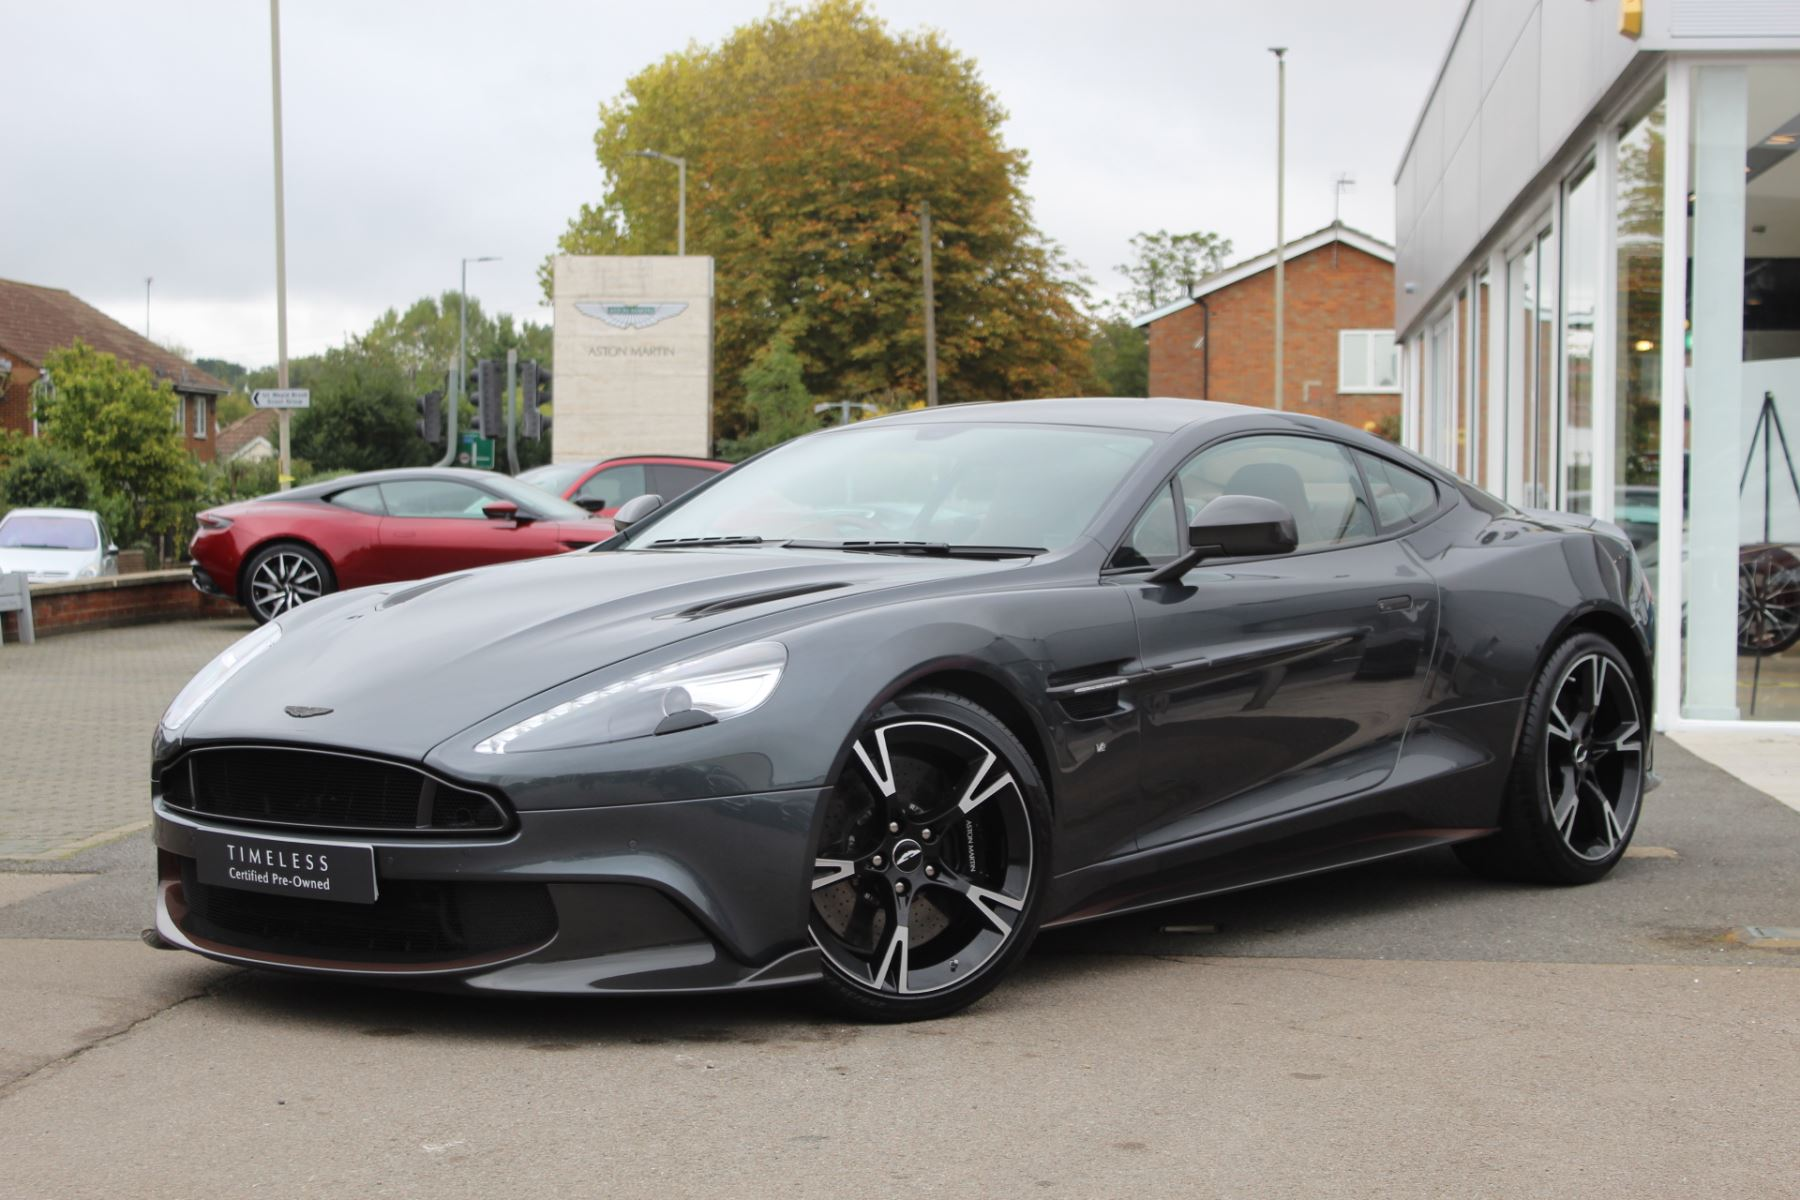 Aston Martin Vanquish V12 [595] S 2+2 Touchtronic  Ultimate 1/175 Worldwide  5.9 Automatic 2 door Coupe